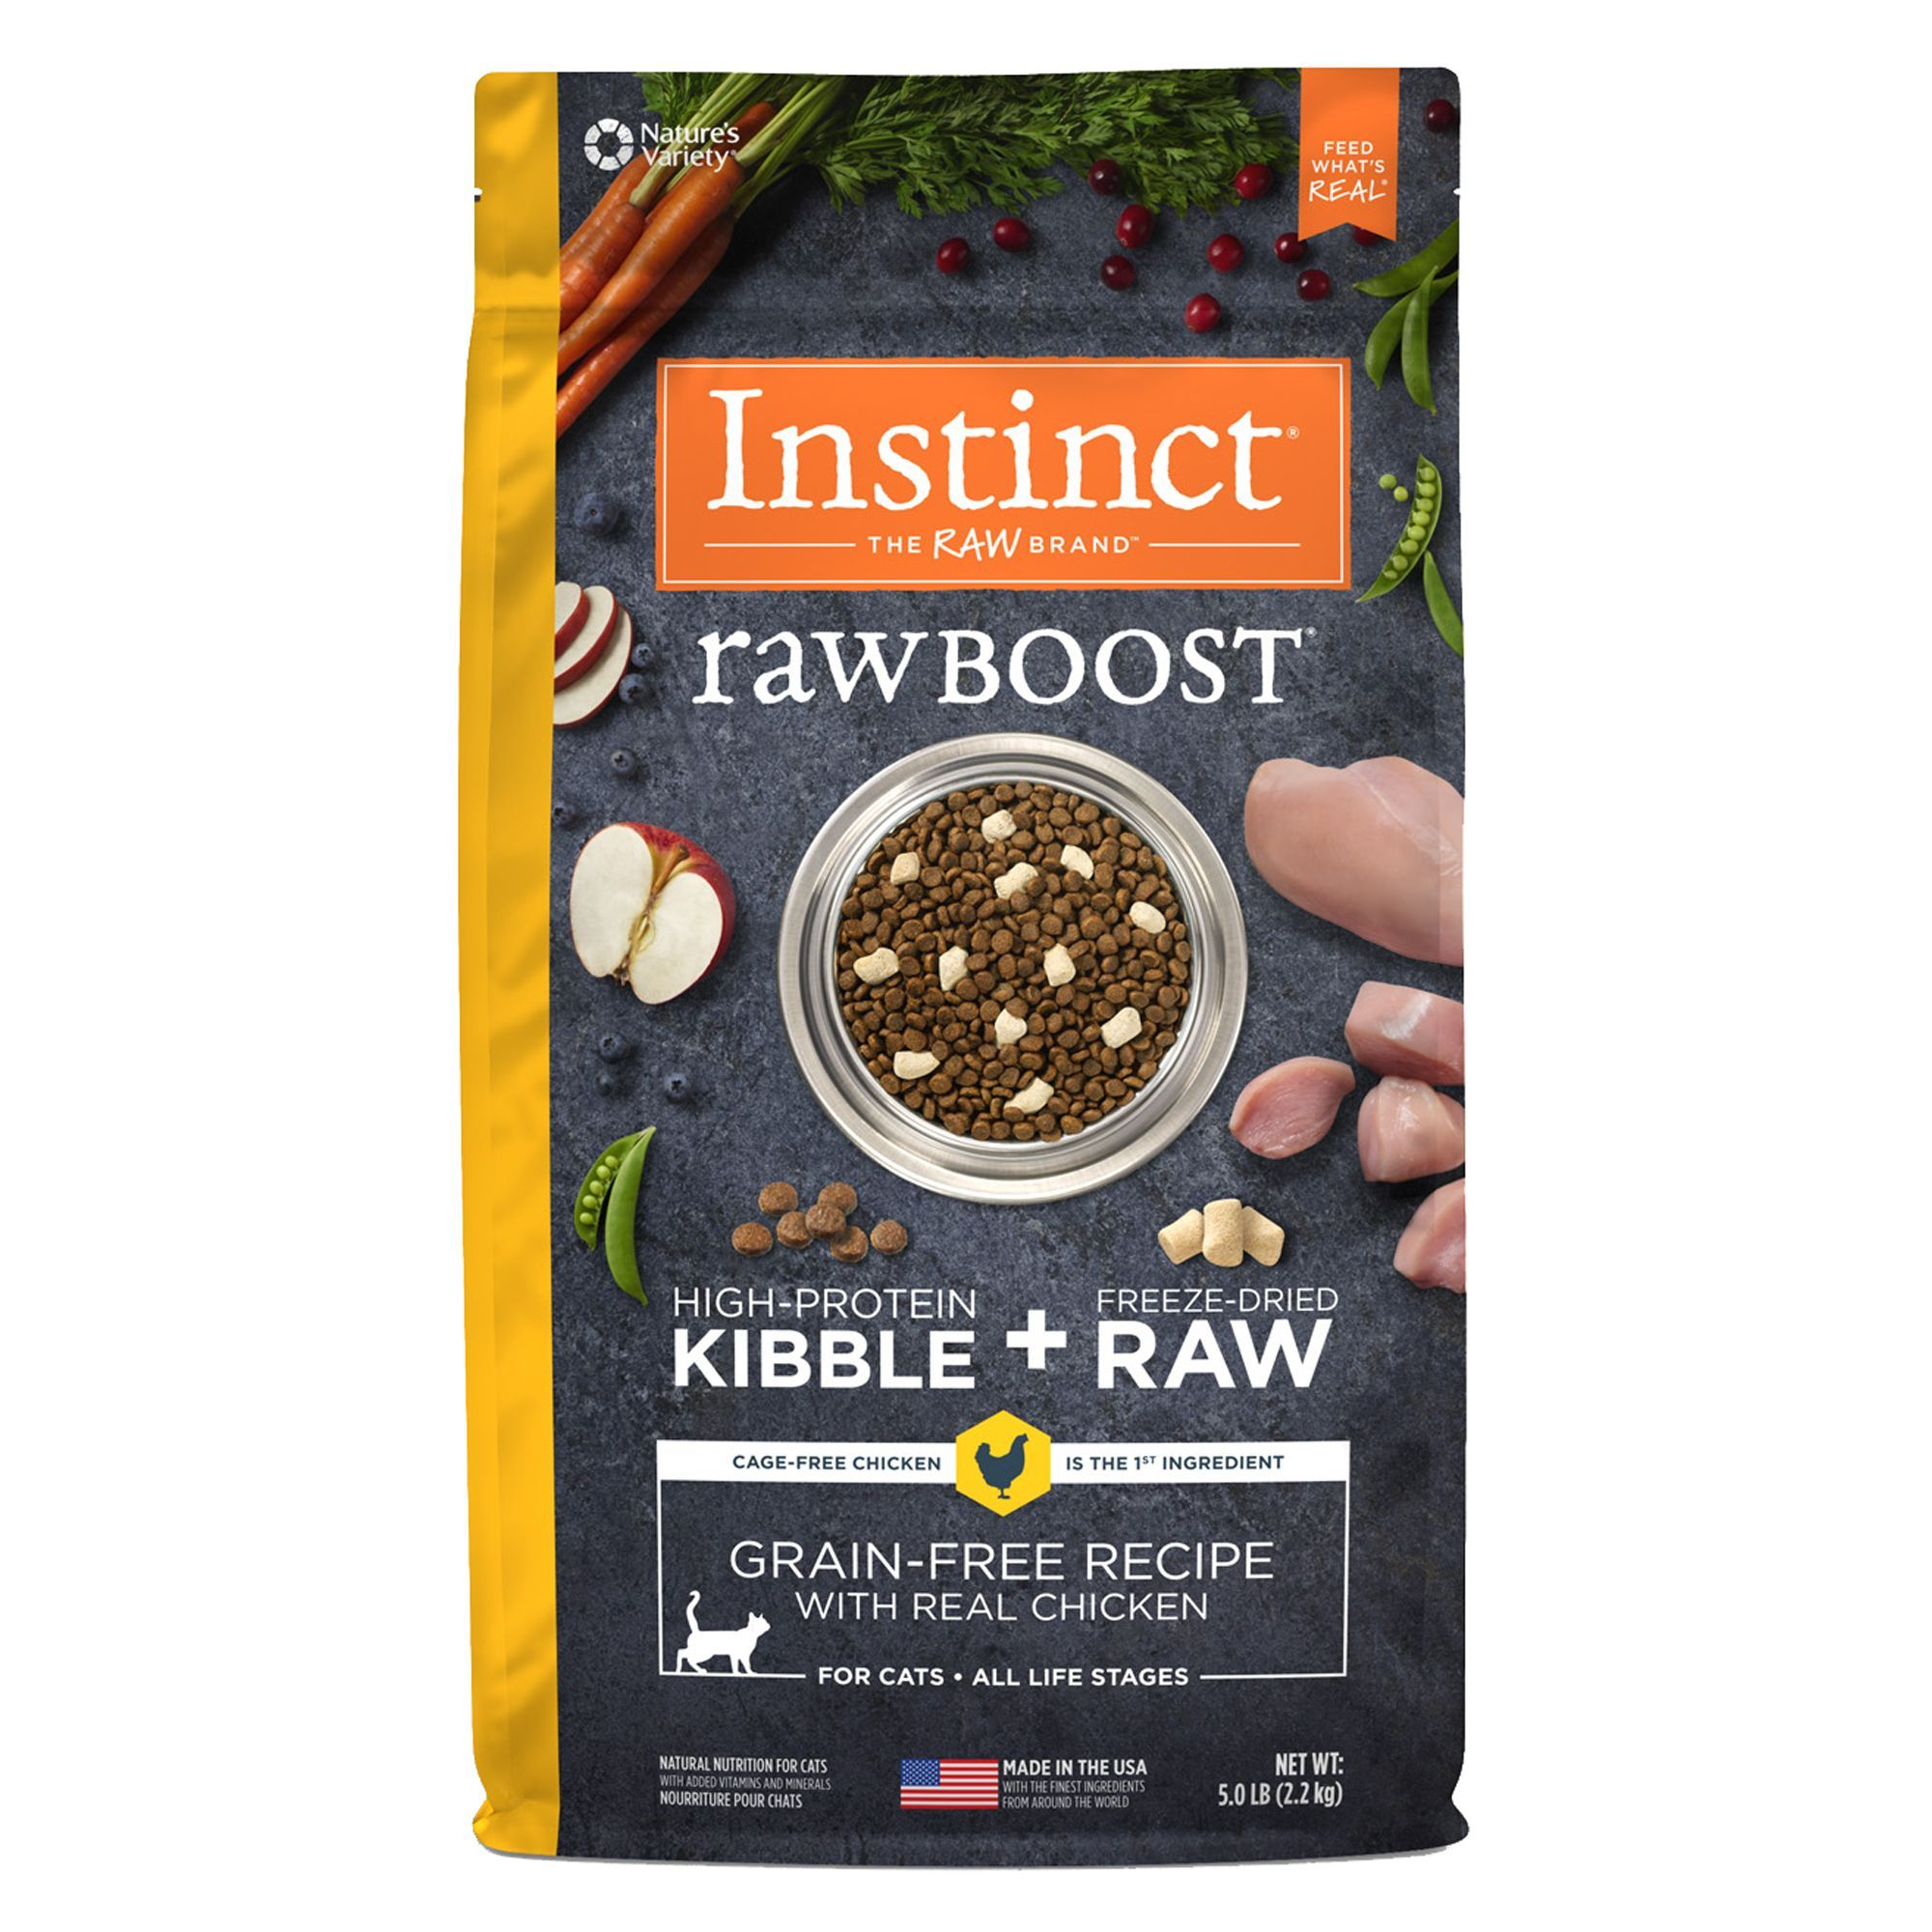 Natures variety instinct raw boost cat food natural